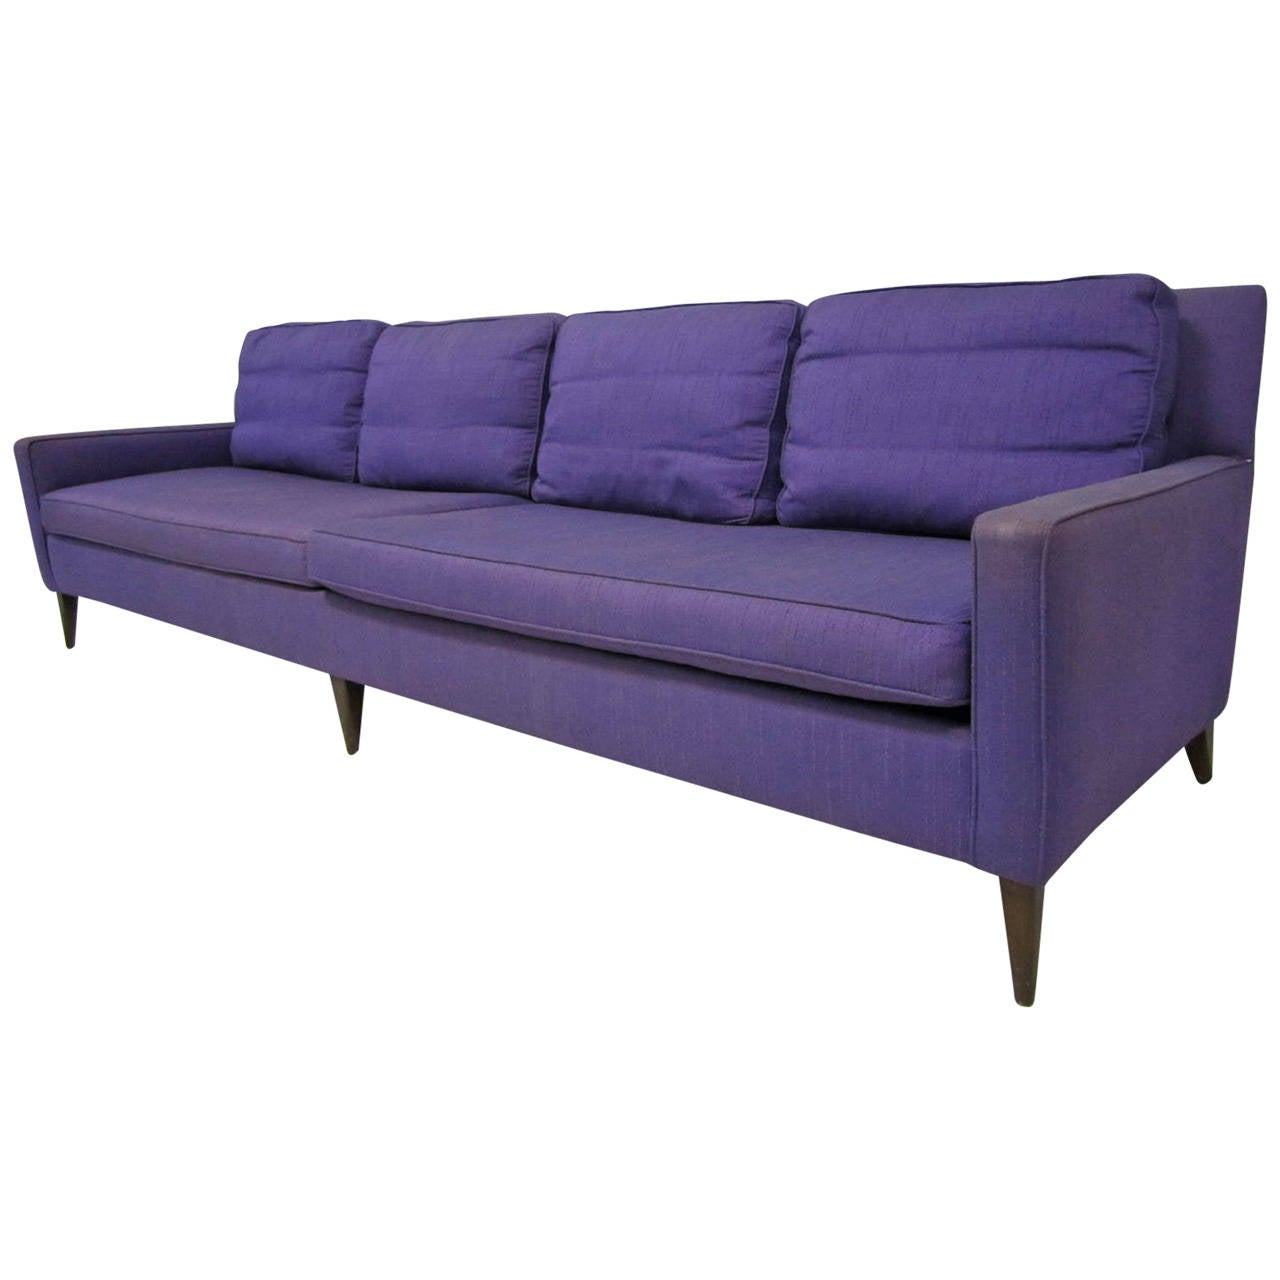 Stunning signed paul mccobb long sofa mid century modern for Long couches for sale